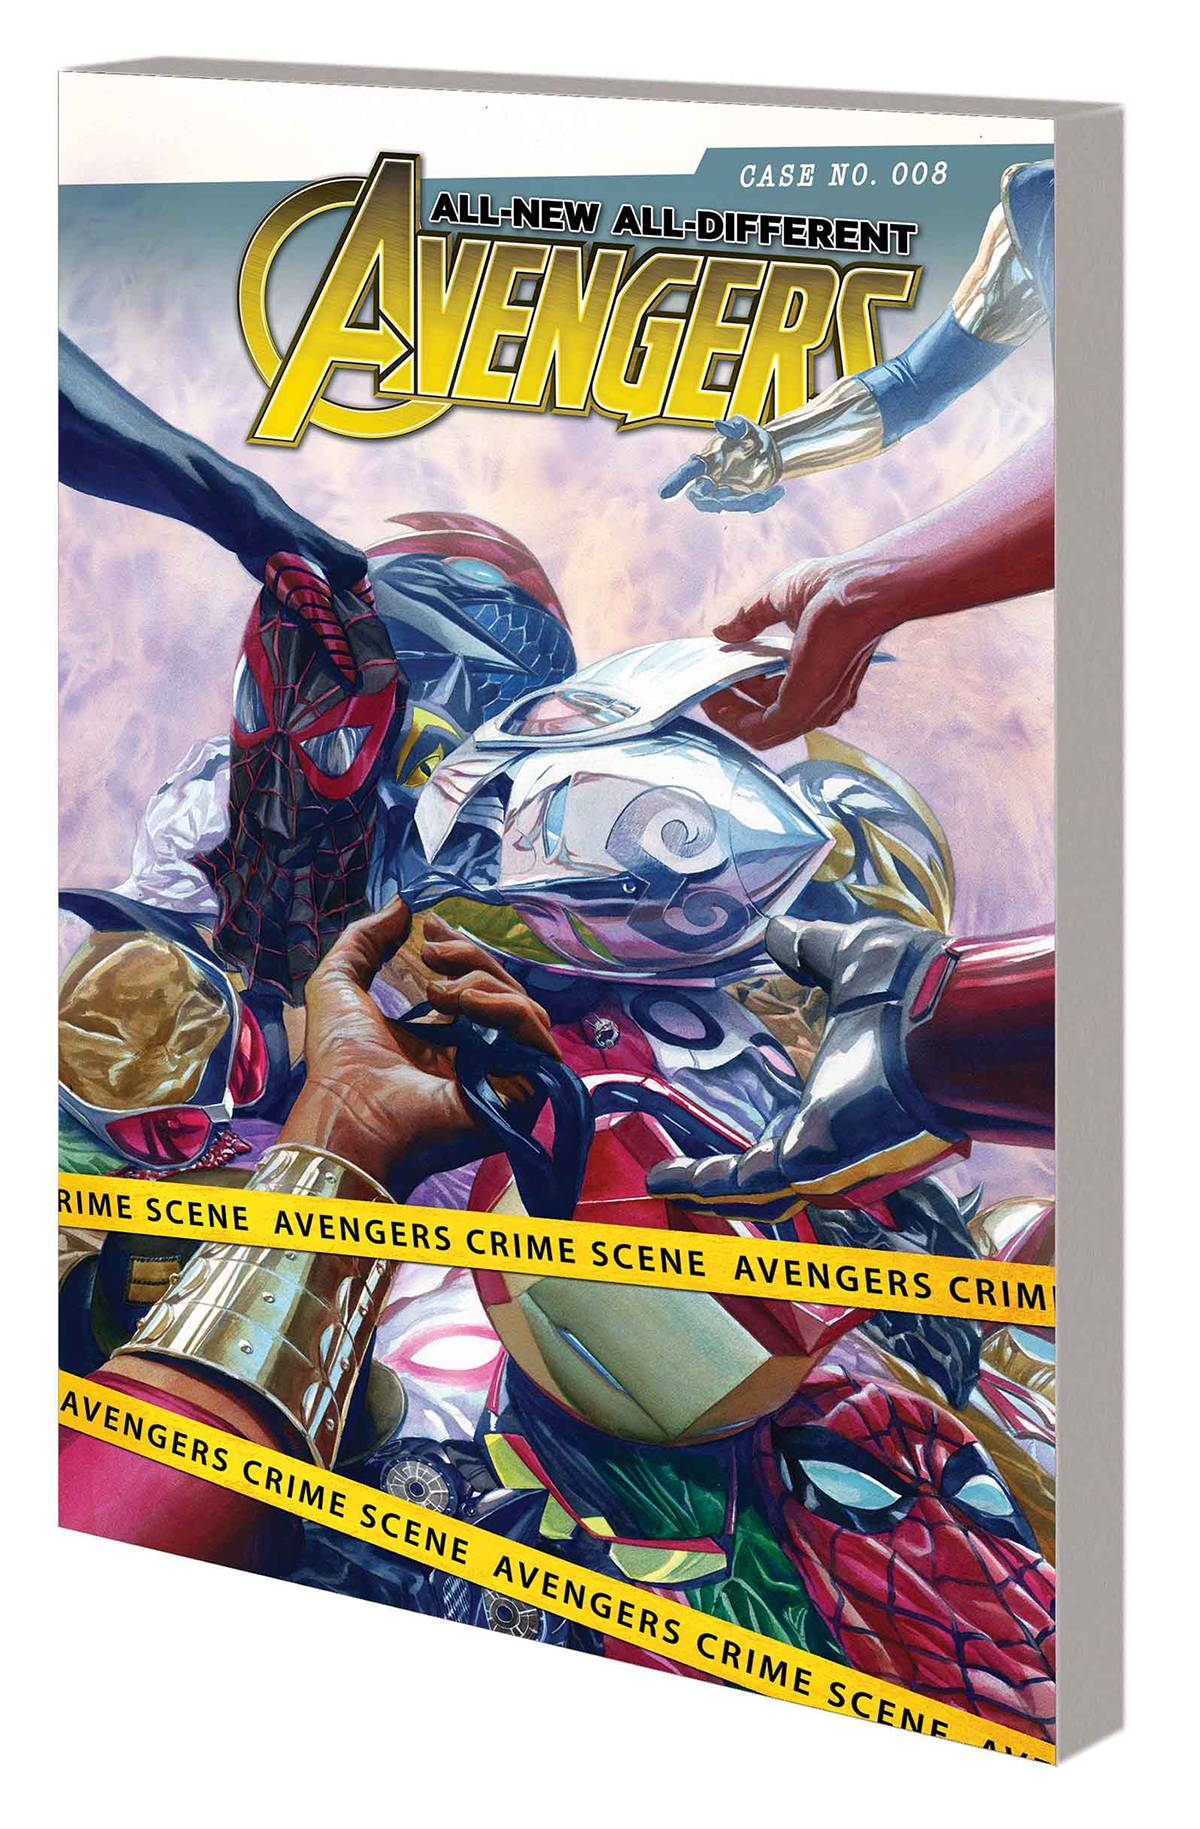 ALL-NEW, ALL-DIFFERENT AVENGERS VOL 02: FAMILY BUSINESS